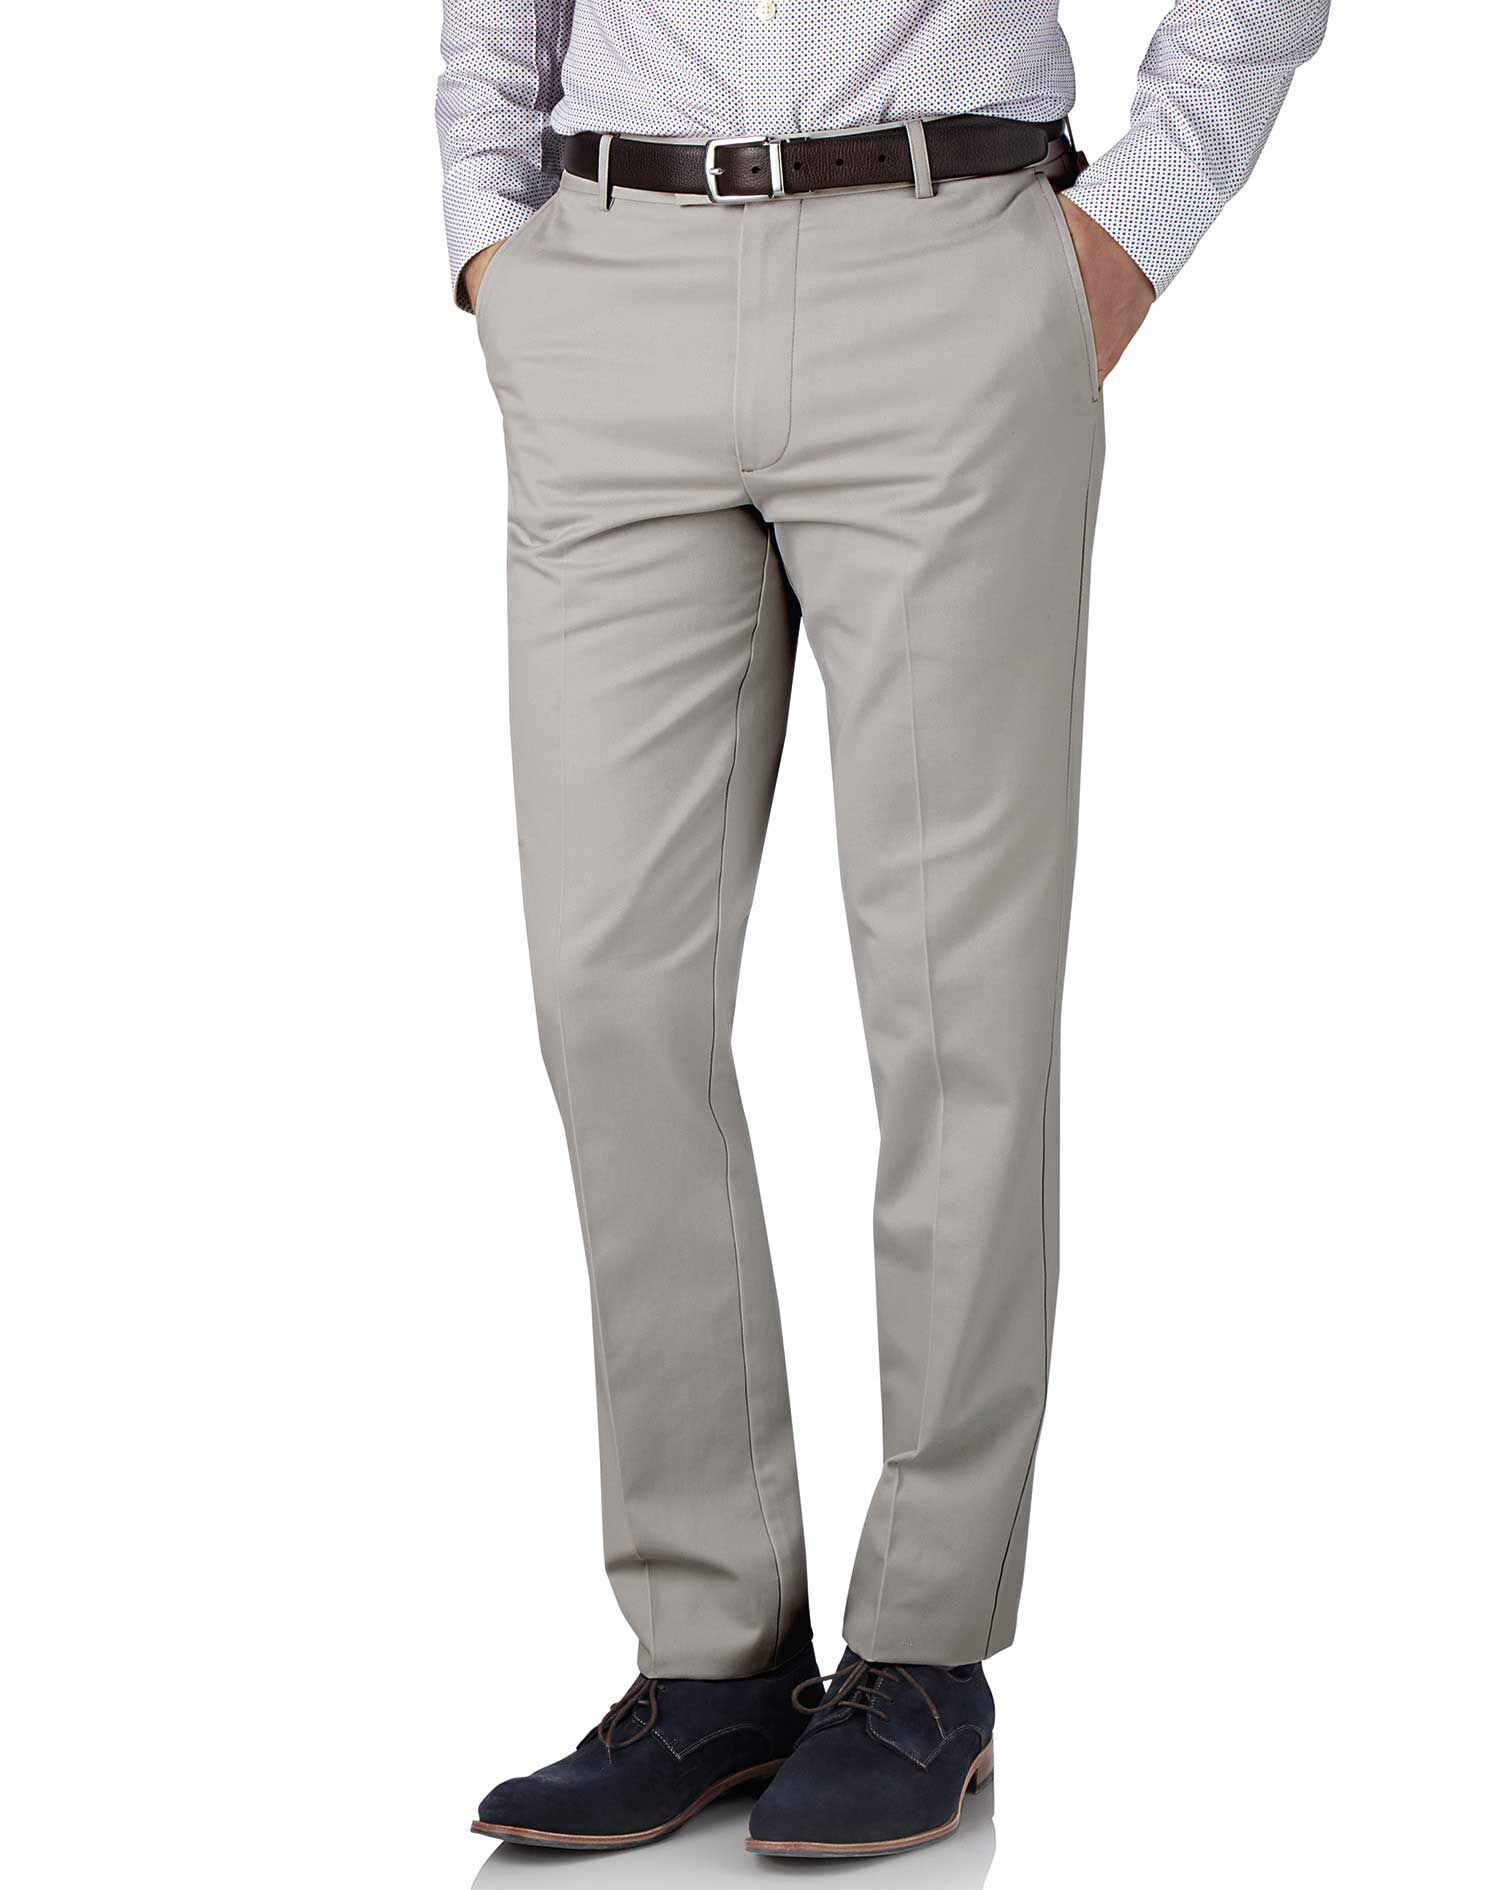 Silver Grey Slim Fit Flat Front Non-Iron Cotton Chino Trousers Size W32 L32 by Charles Tyrwhitt